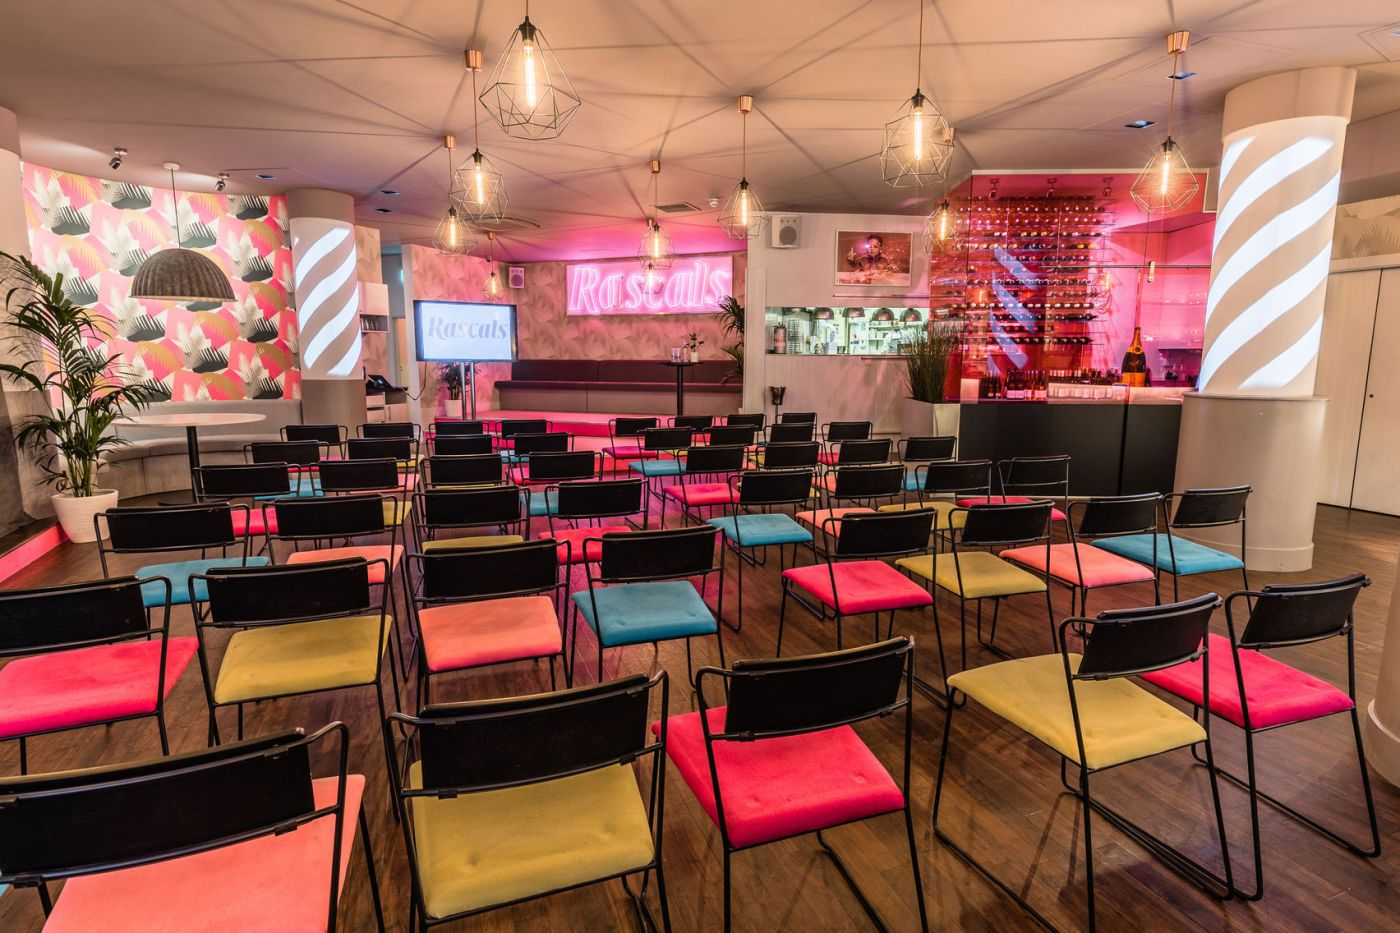 A quirky venue with coloured seats and neon lights